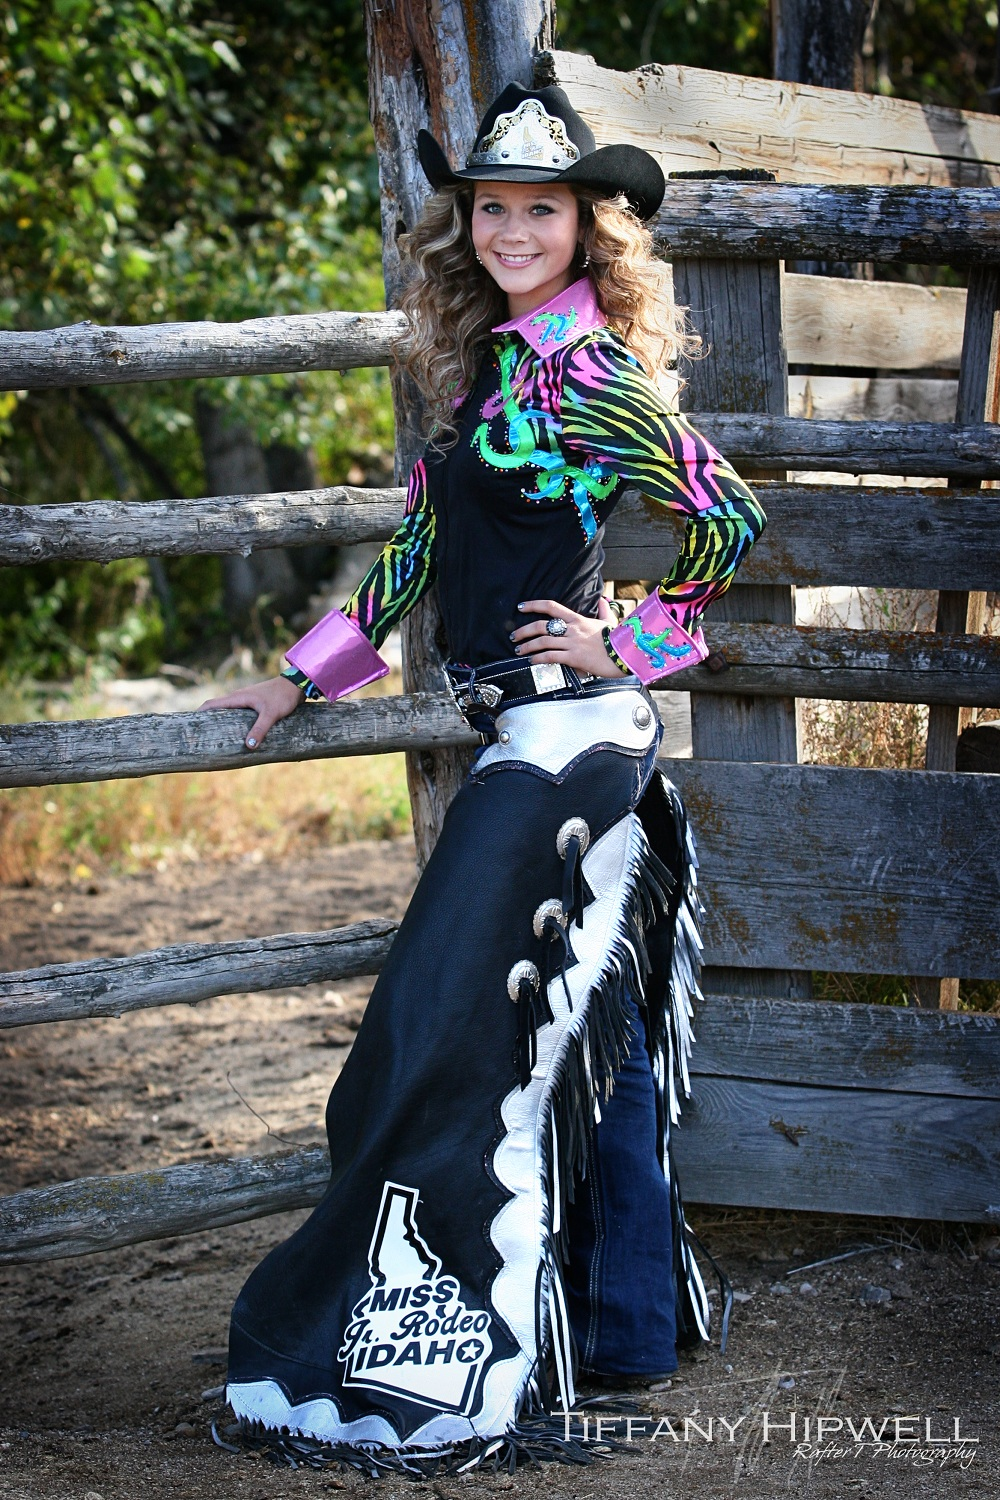 rafter t seniors  official photographer of miss  jr rodeo idaho 2012